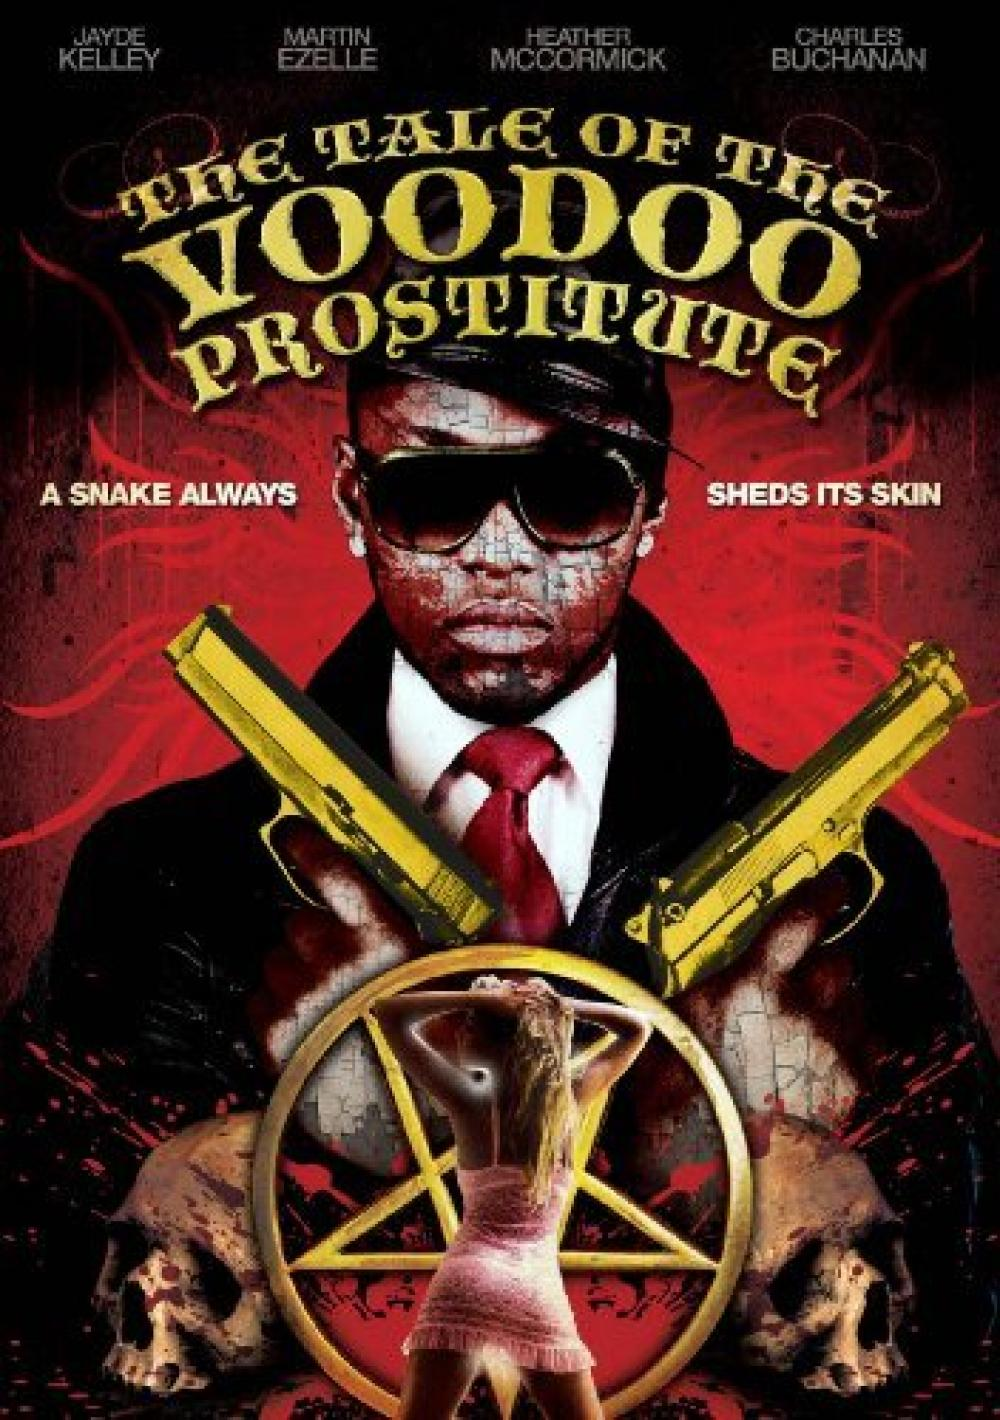 Tale Of The Voodoo Prostitute